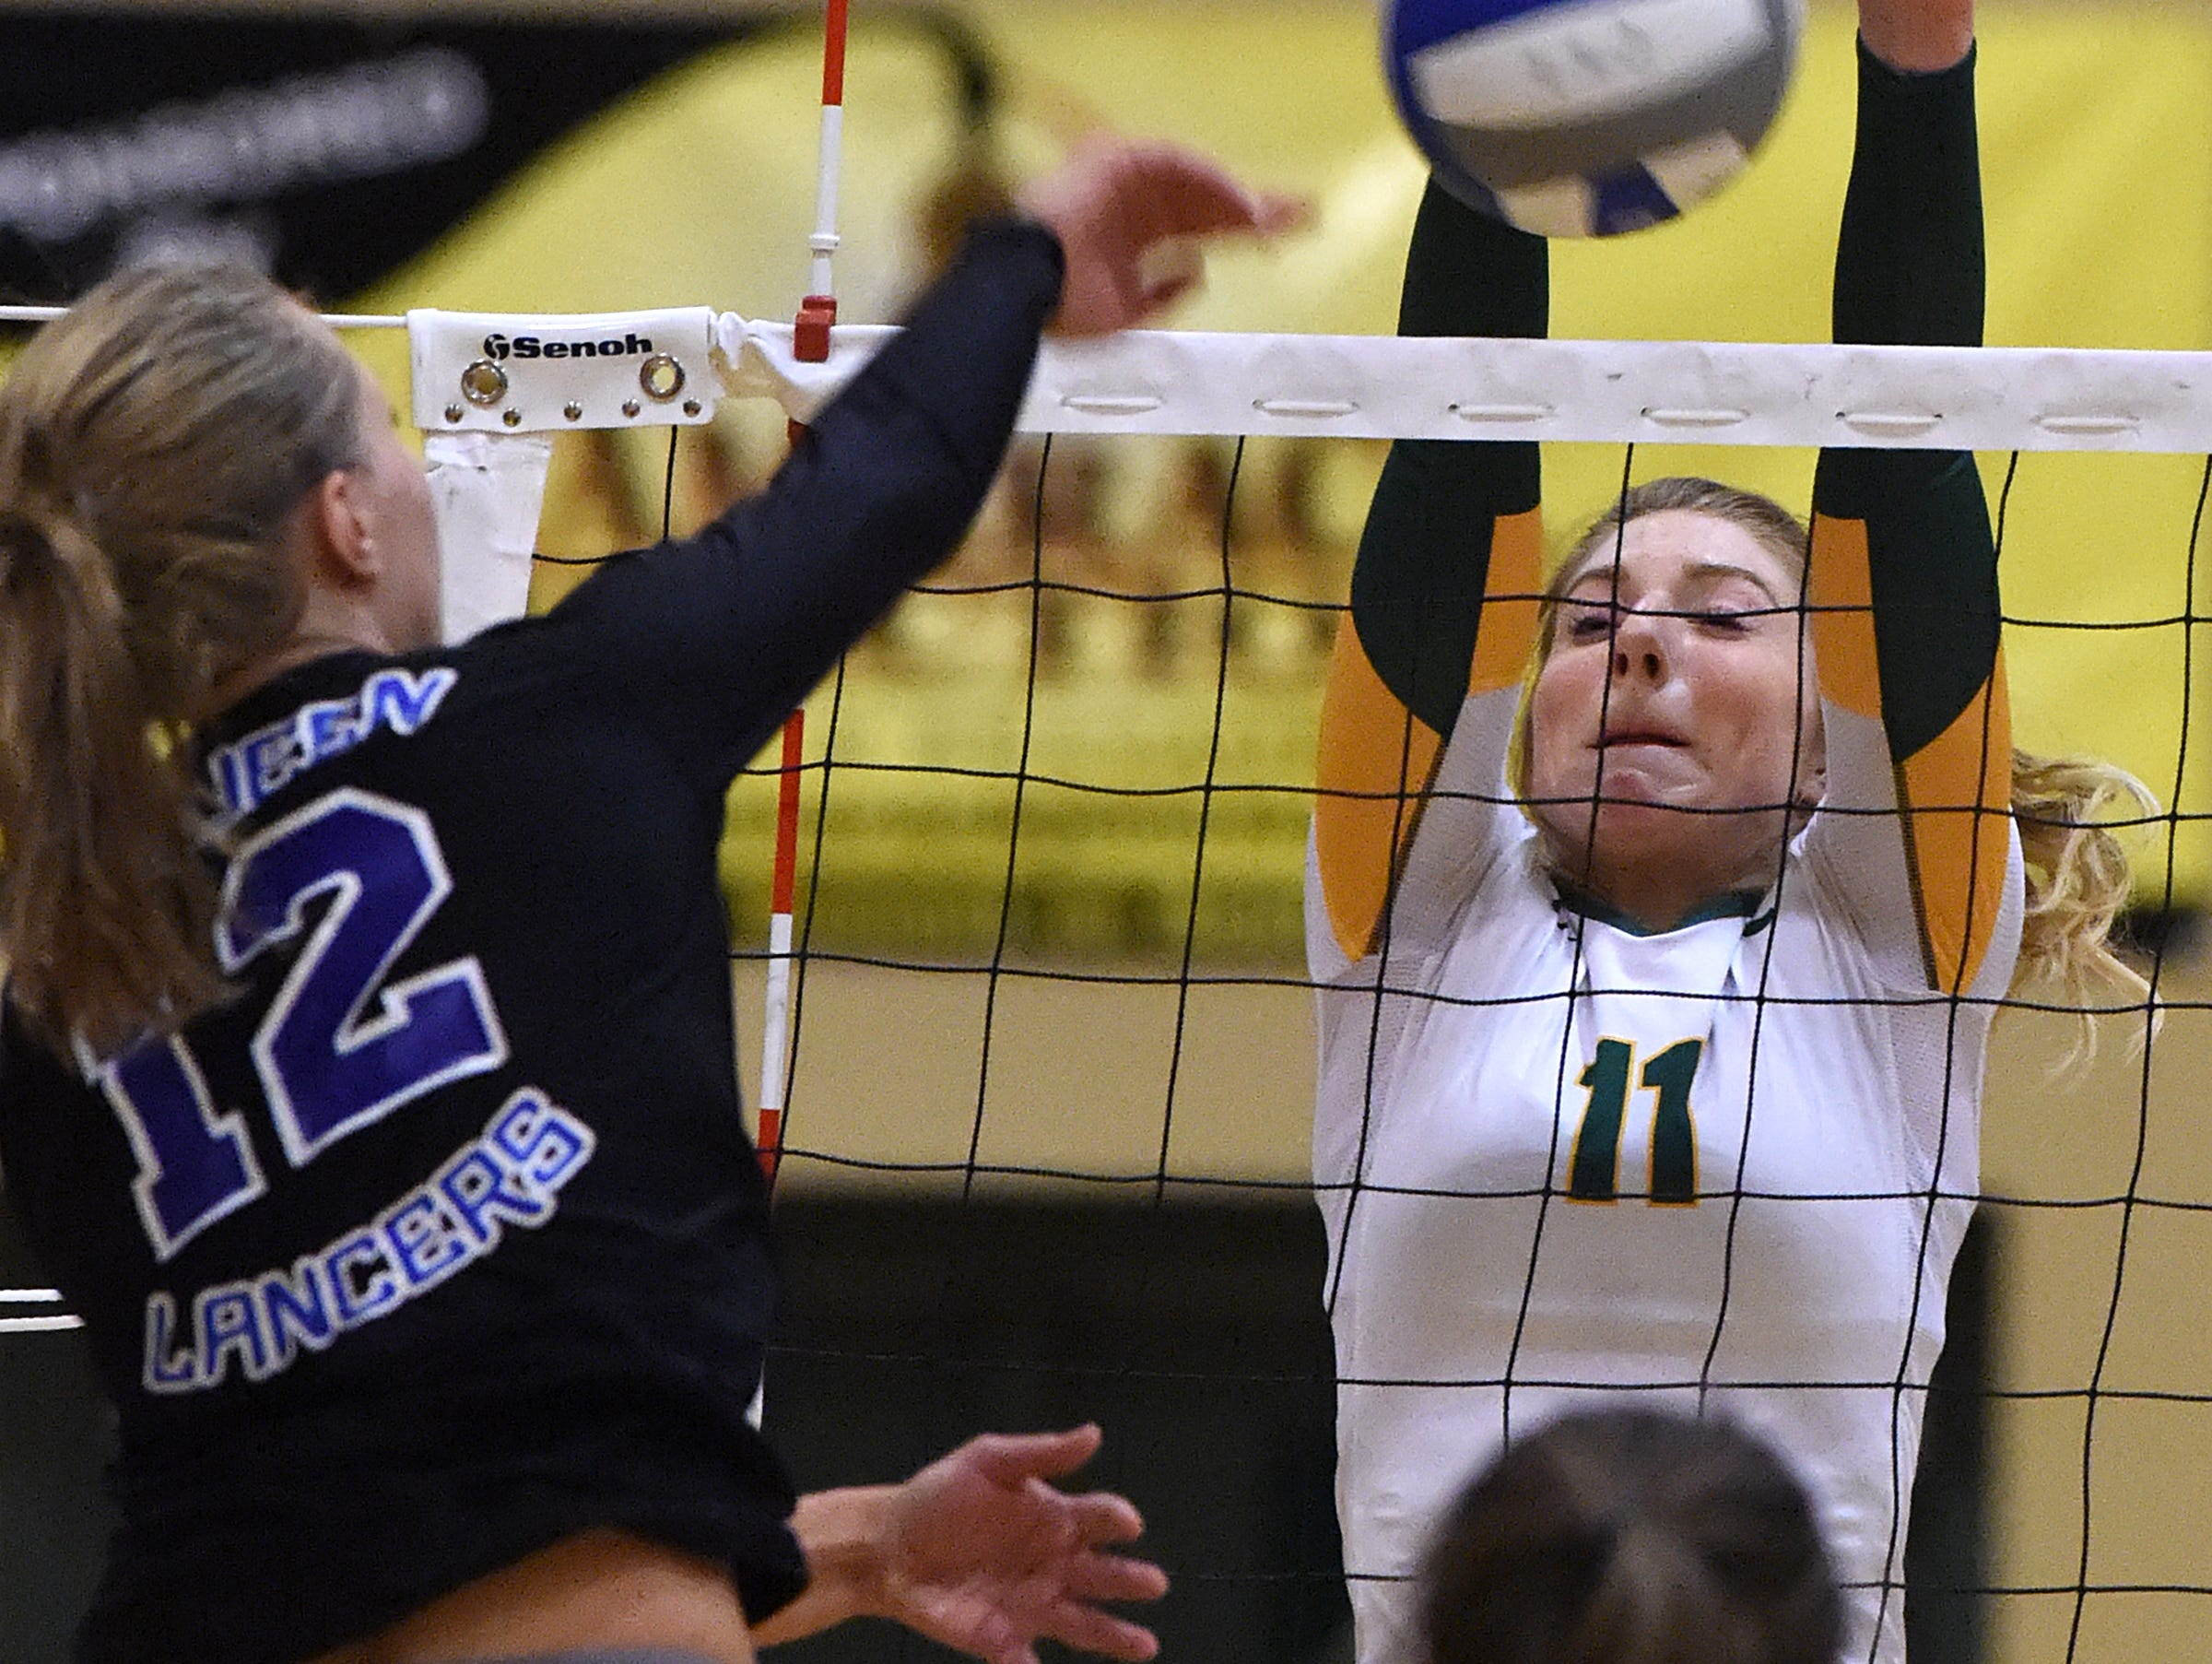 Manogue's Becca Smith goes up to block a shot by McQueen's Annika Kerns during Tuesday's game at Manogue High School on Sept. 20, 2016.